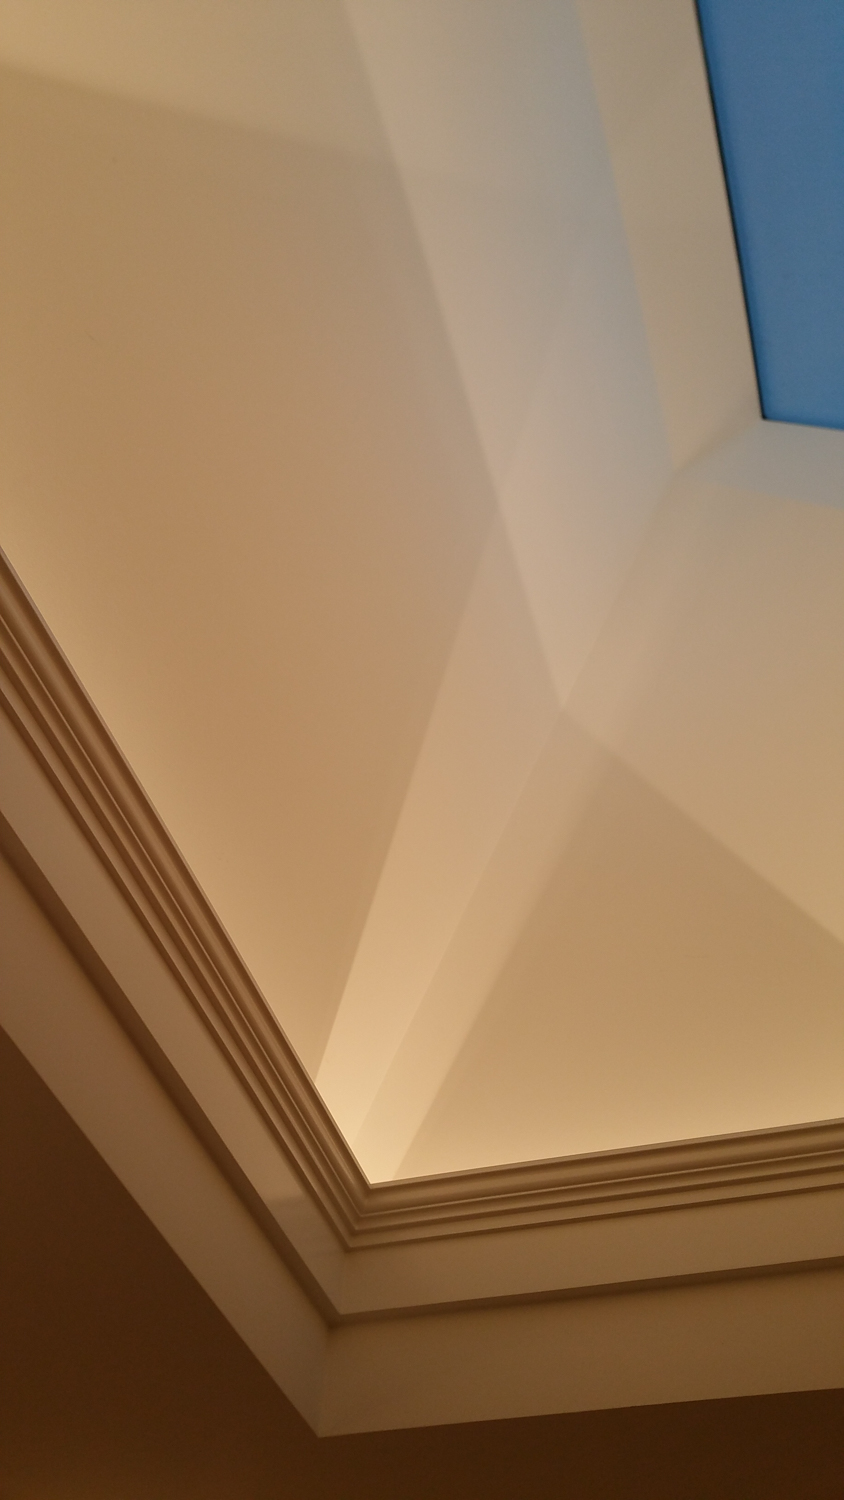 Skylight forms